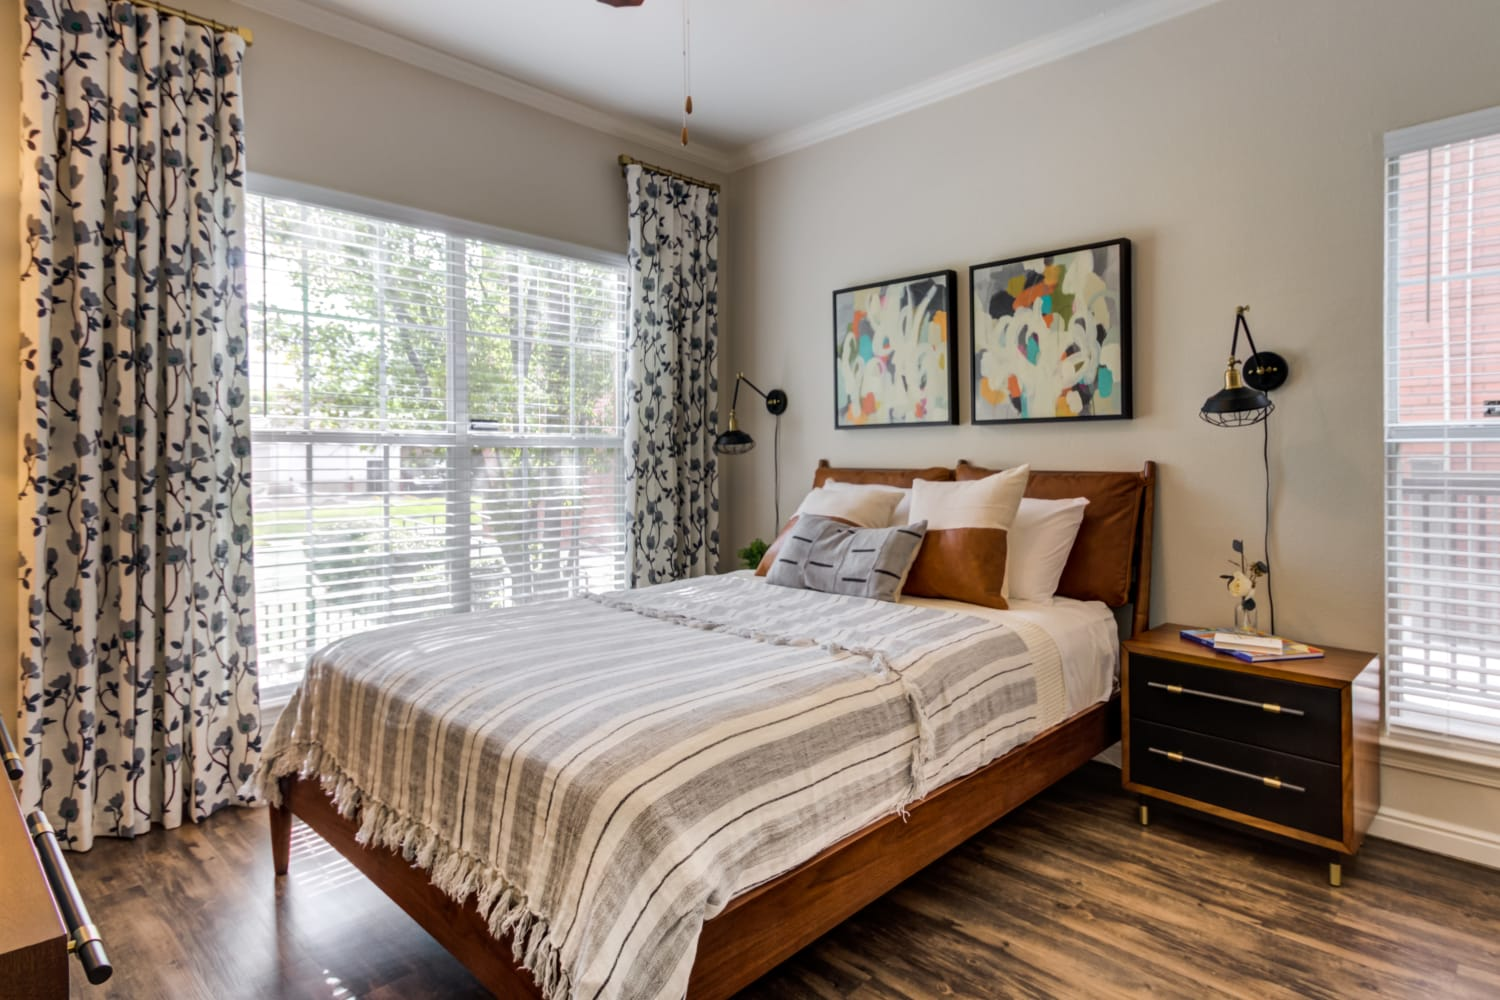 A bedroom with large windows features ample natural light and hardwood floors in an apartment at Irving Schoolhouse Apartments in Salt Lake City, Utah